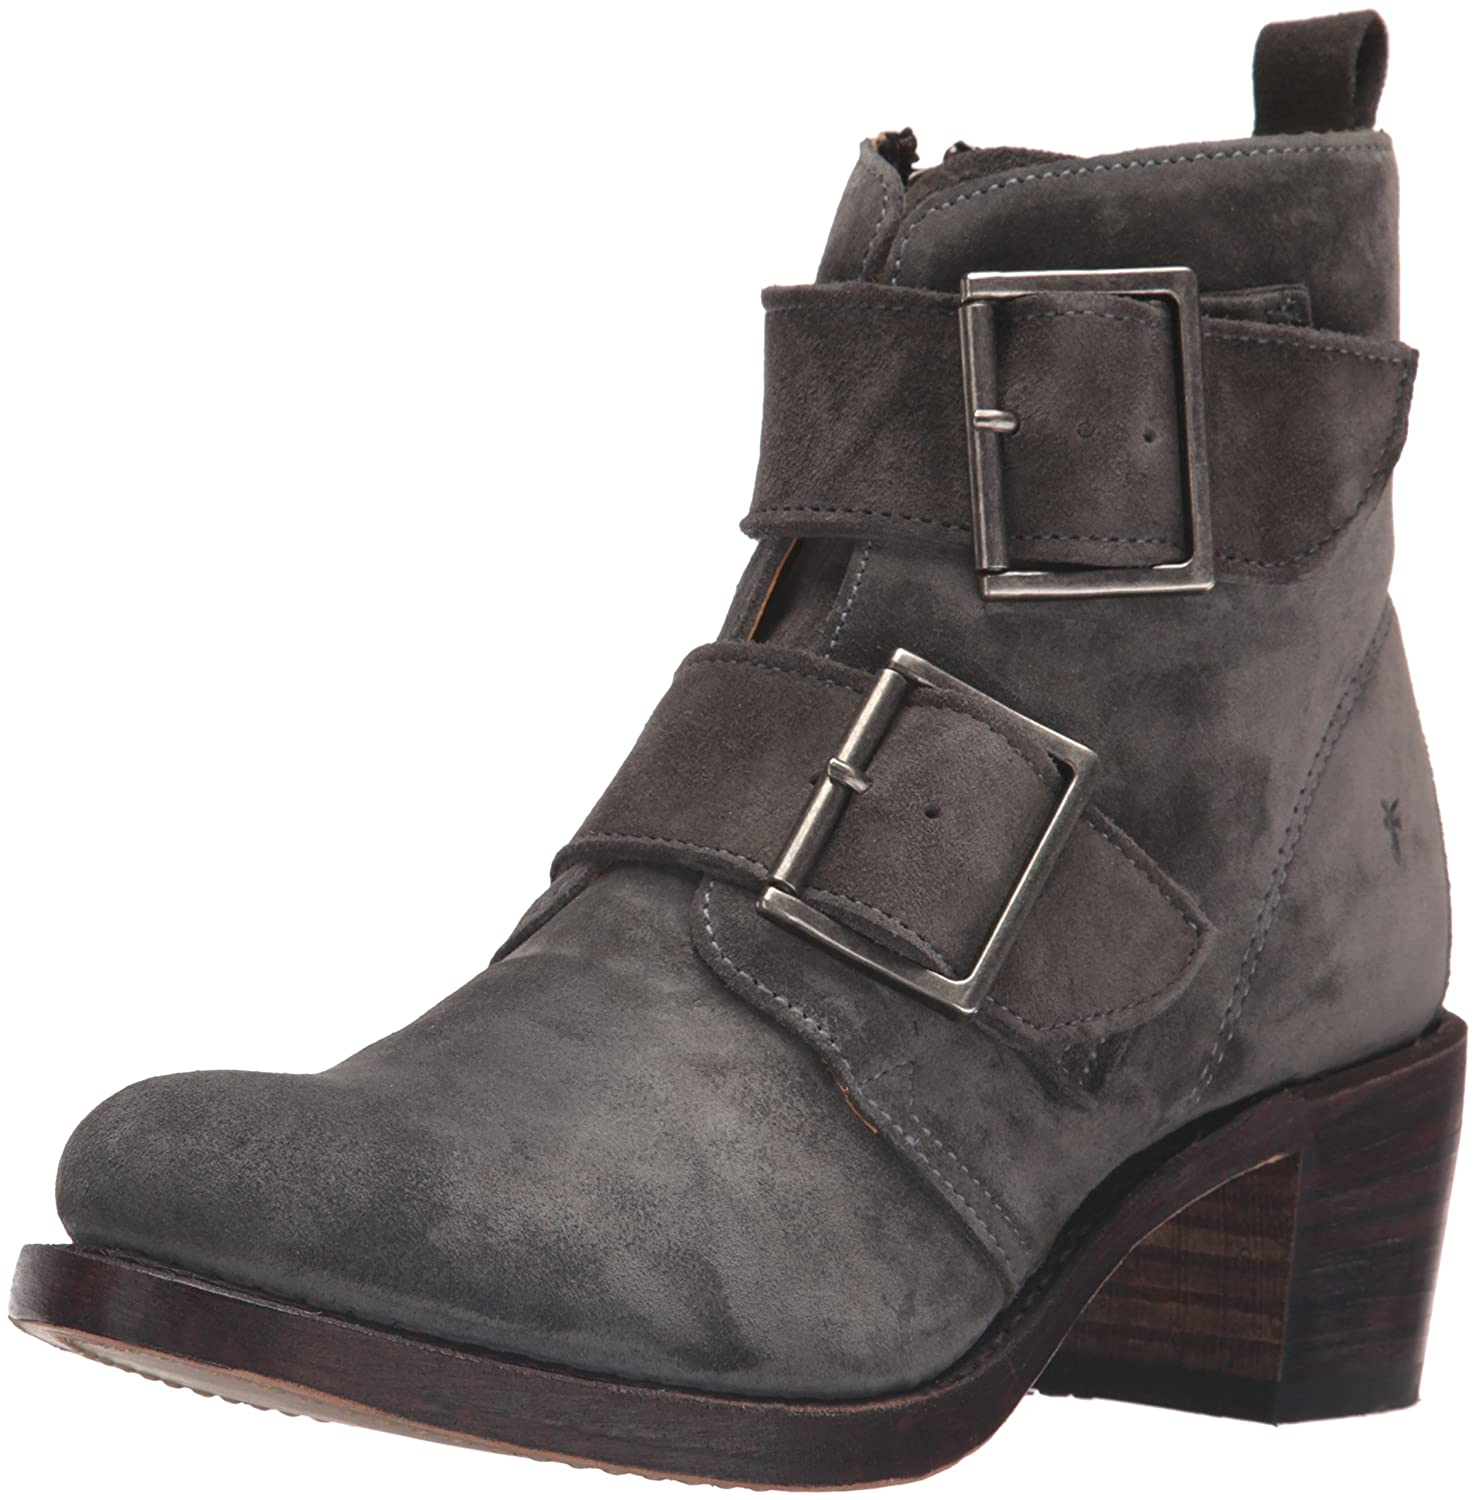 Anthracite FRYE Wohommes Sabrina Double Buckle Suede démarrage démarrage démarrage c36